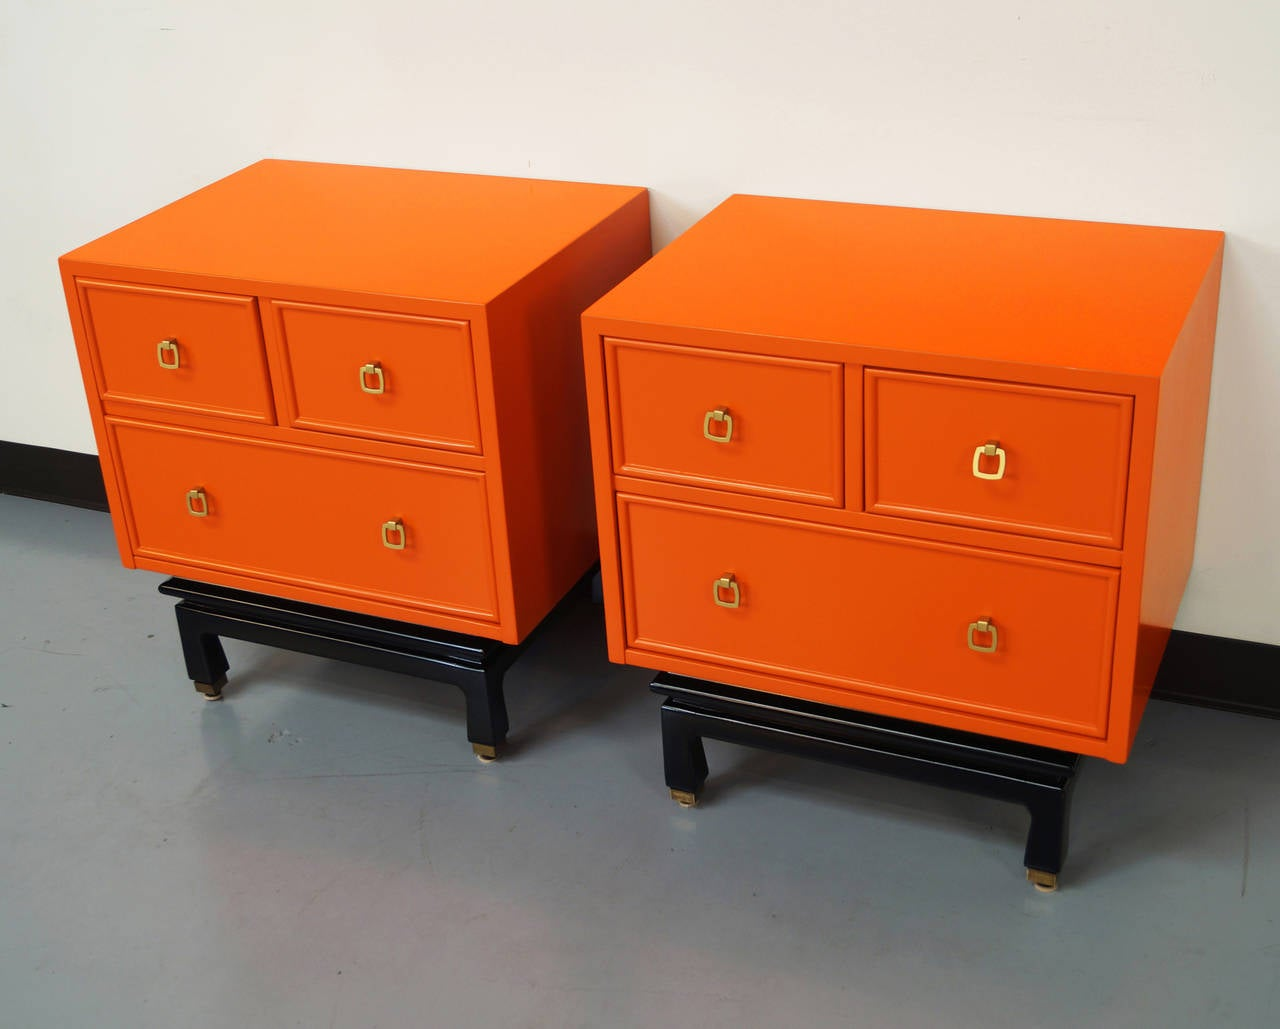 Vintage lacquered nightstands by american of martinsville for American martinsville bedroom furniture